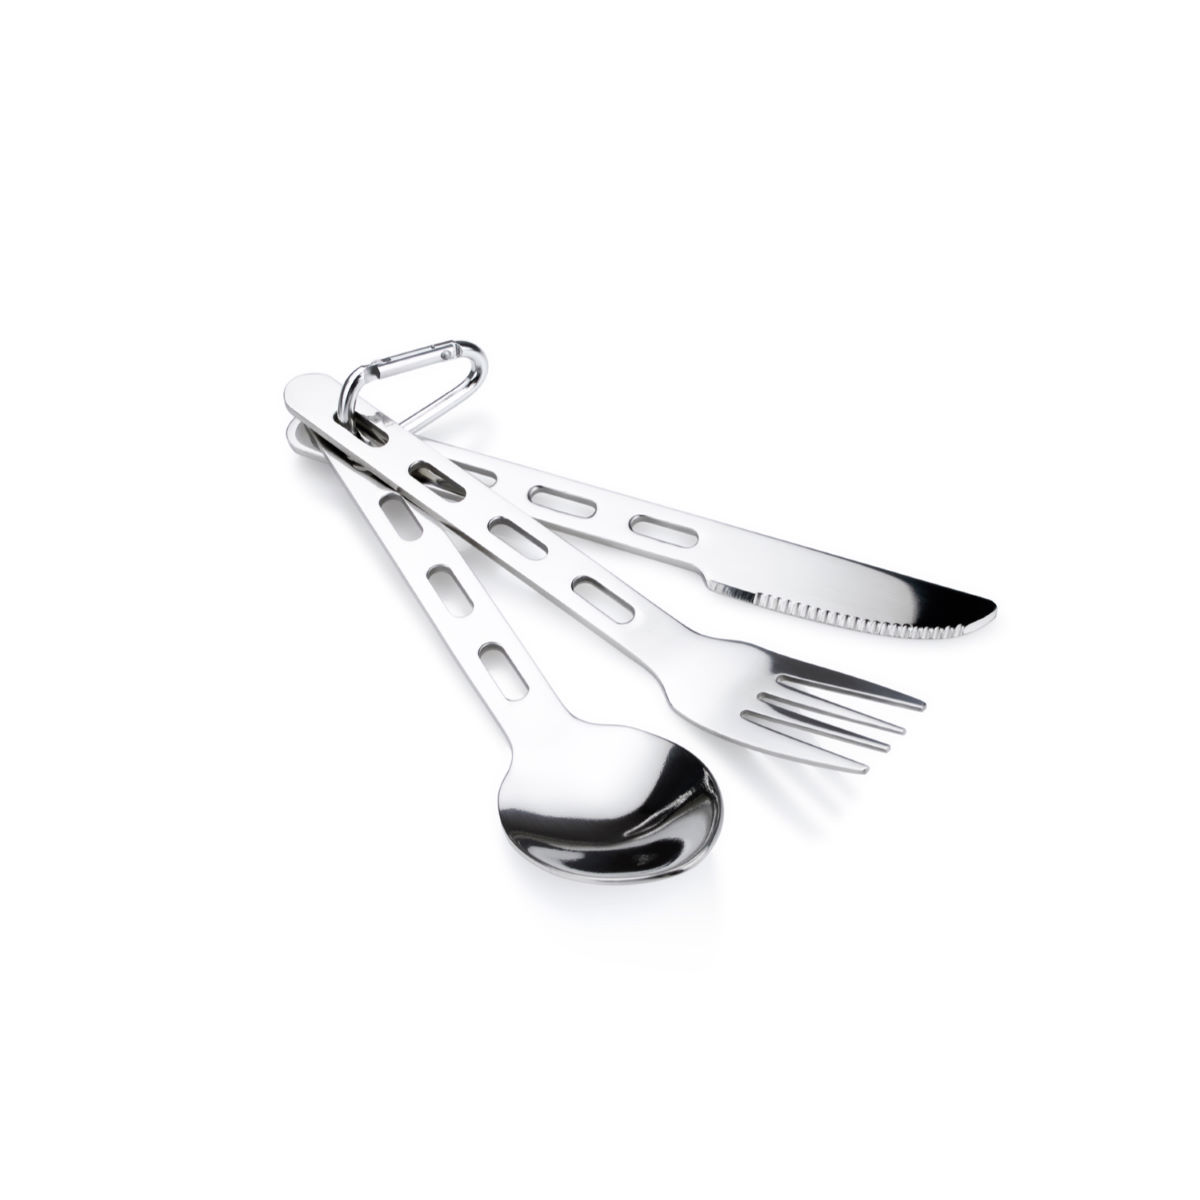 GSI Outdoors Glacier Stainless Cutlery Set - Cubiertos